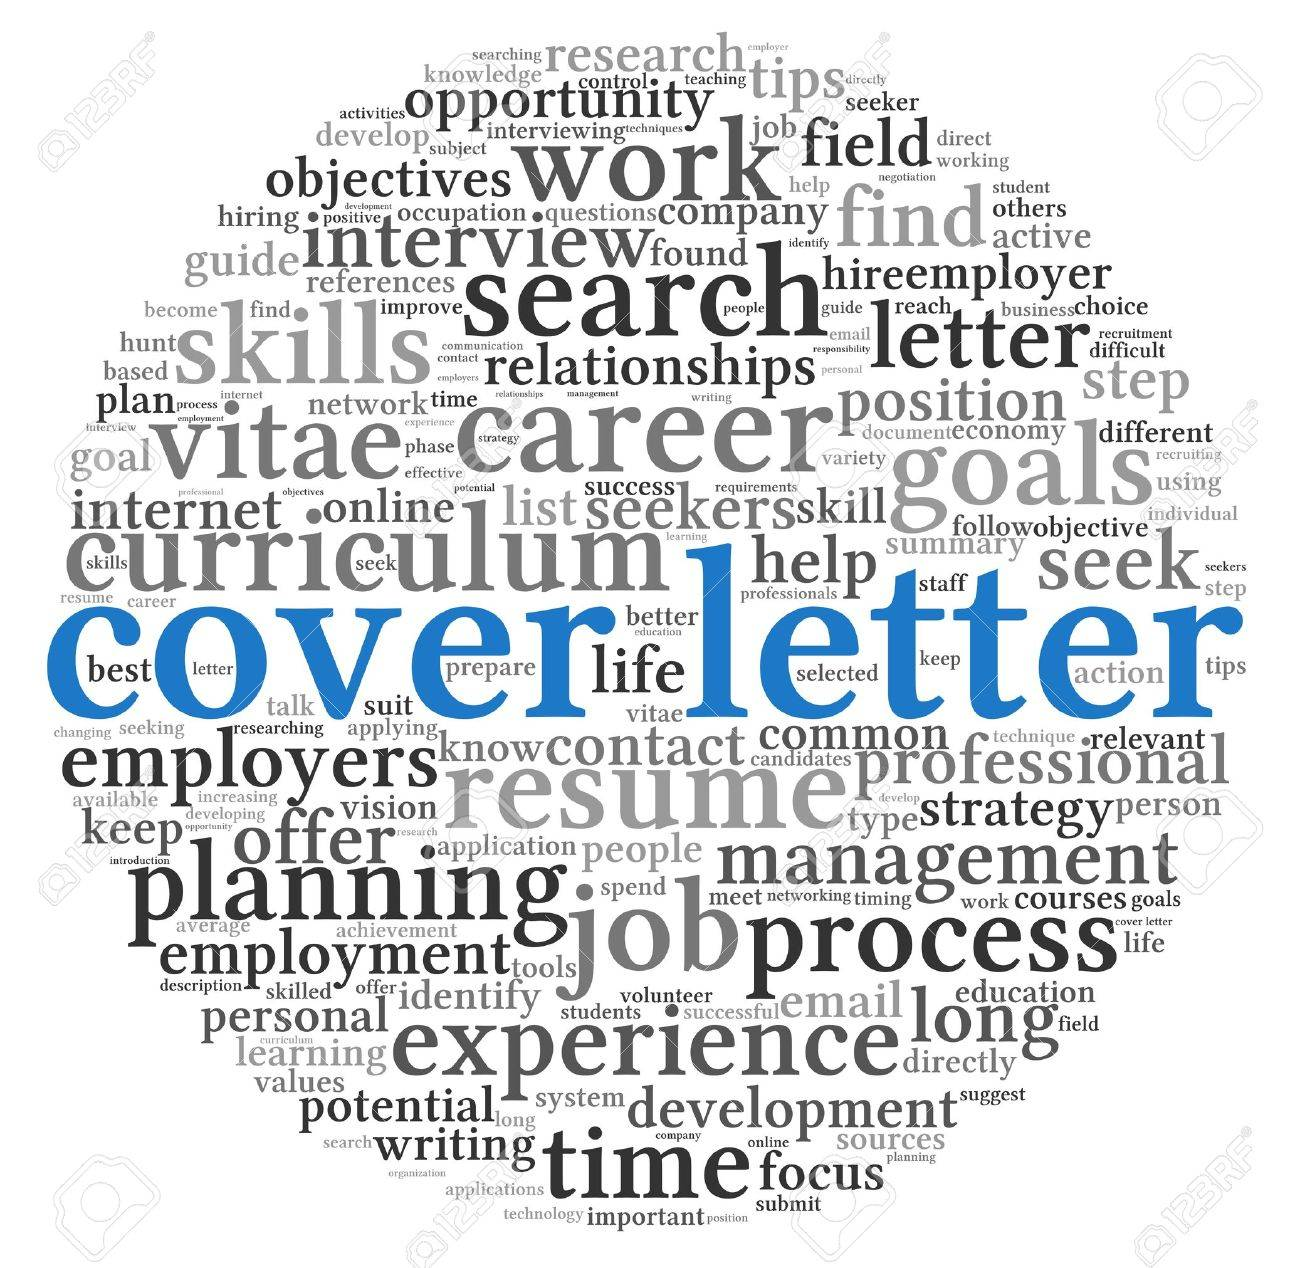 cover letter concept in word tag cloud on white background stock cover letter concept in word tag cloud on white background stock photo 15257316